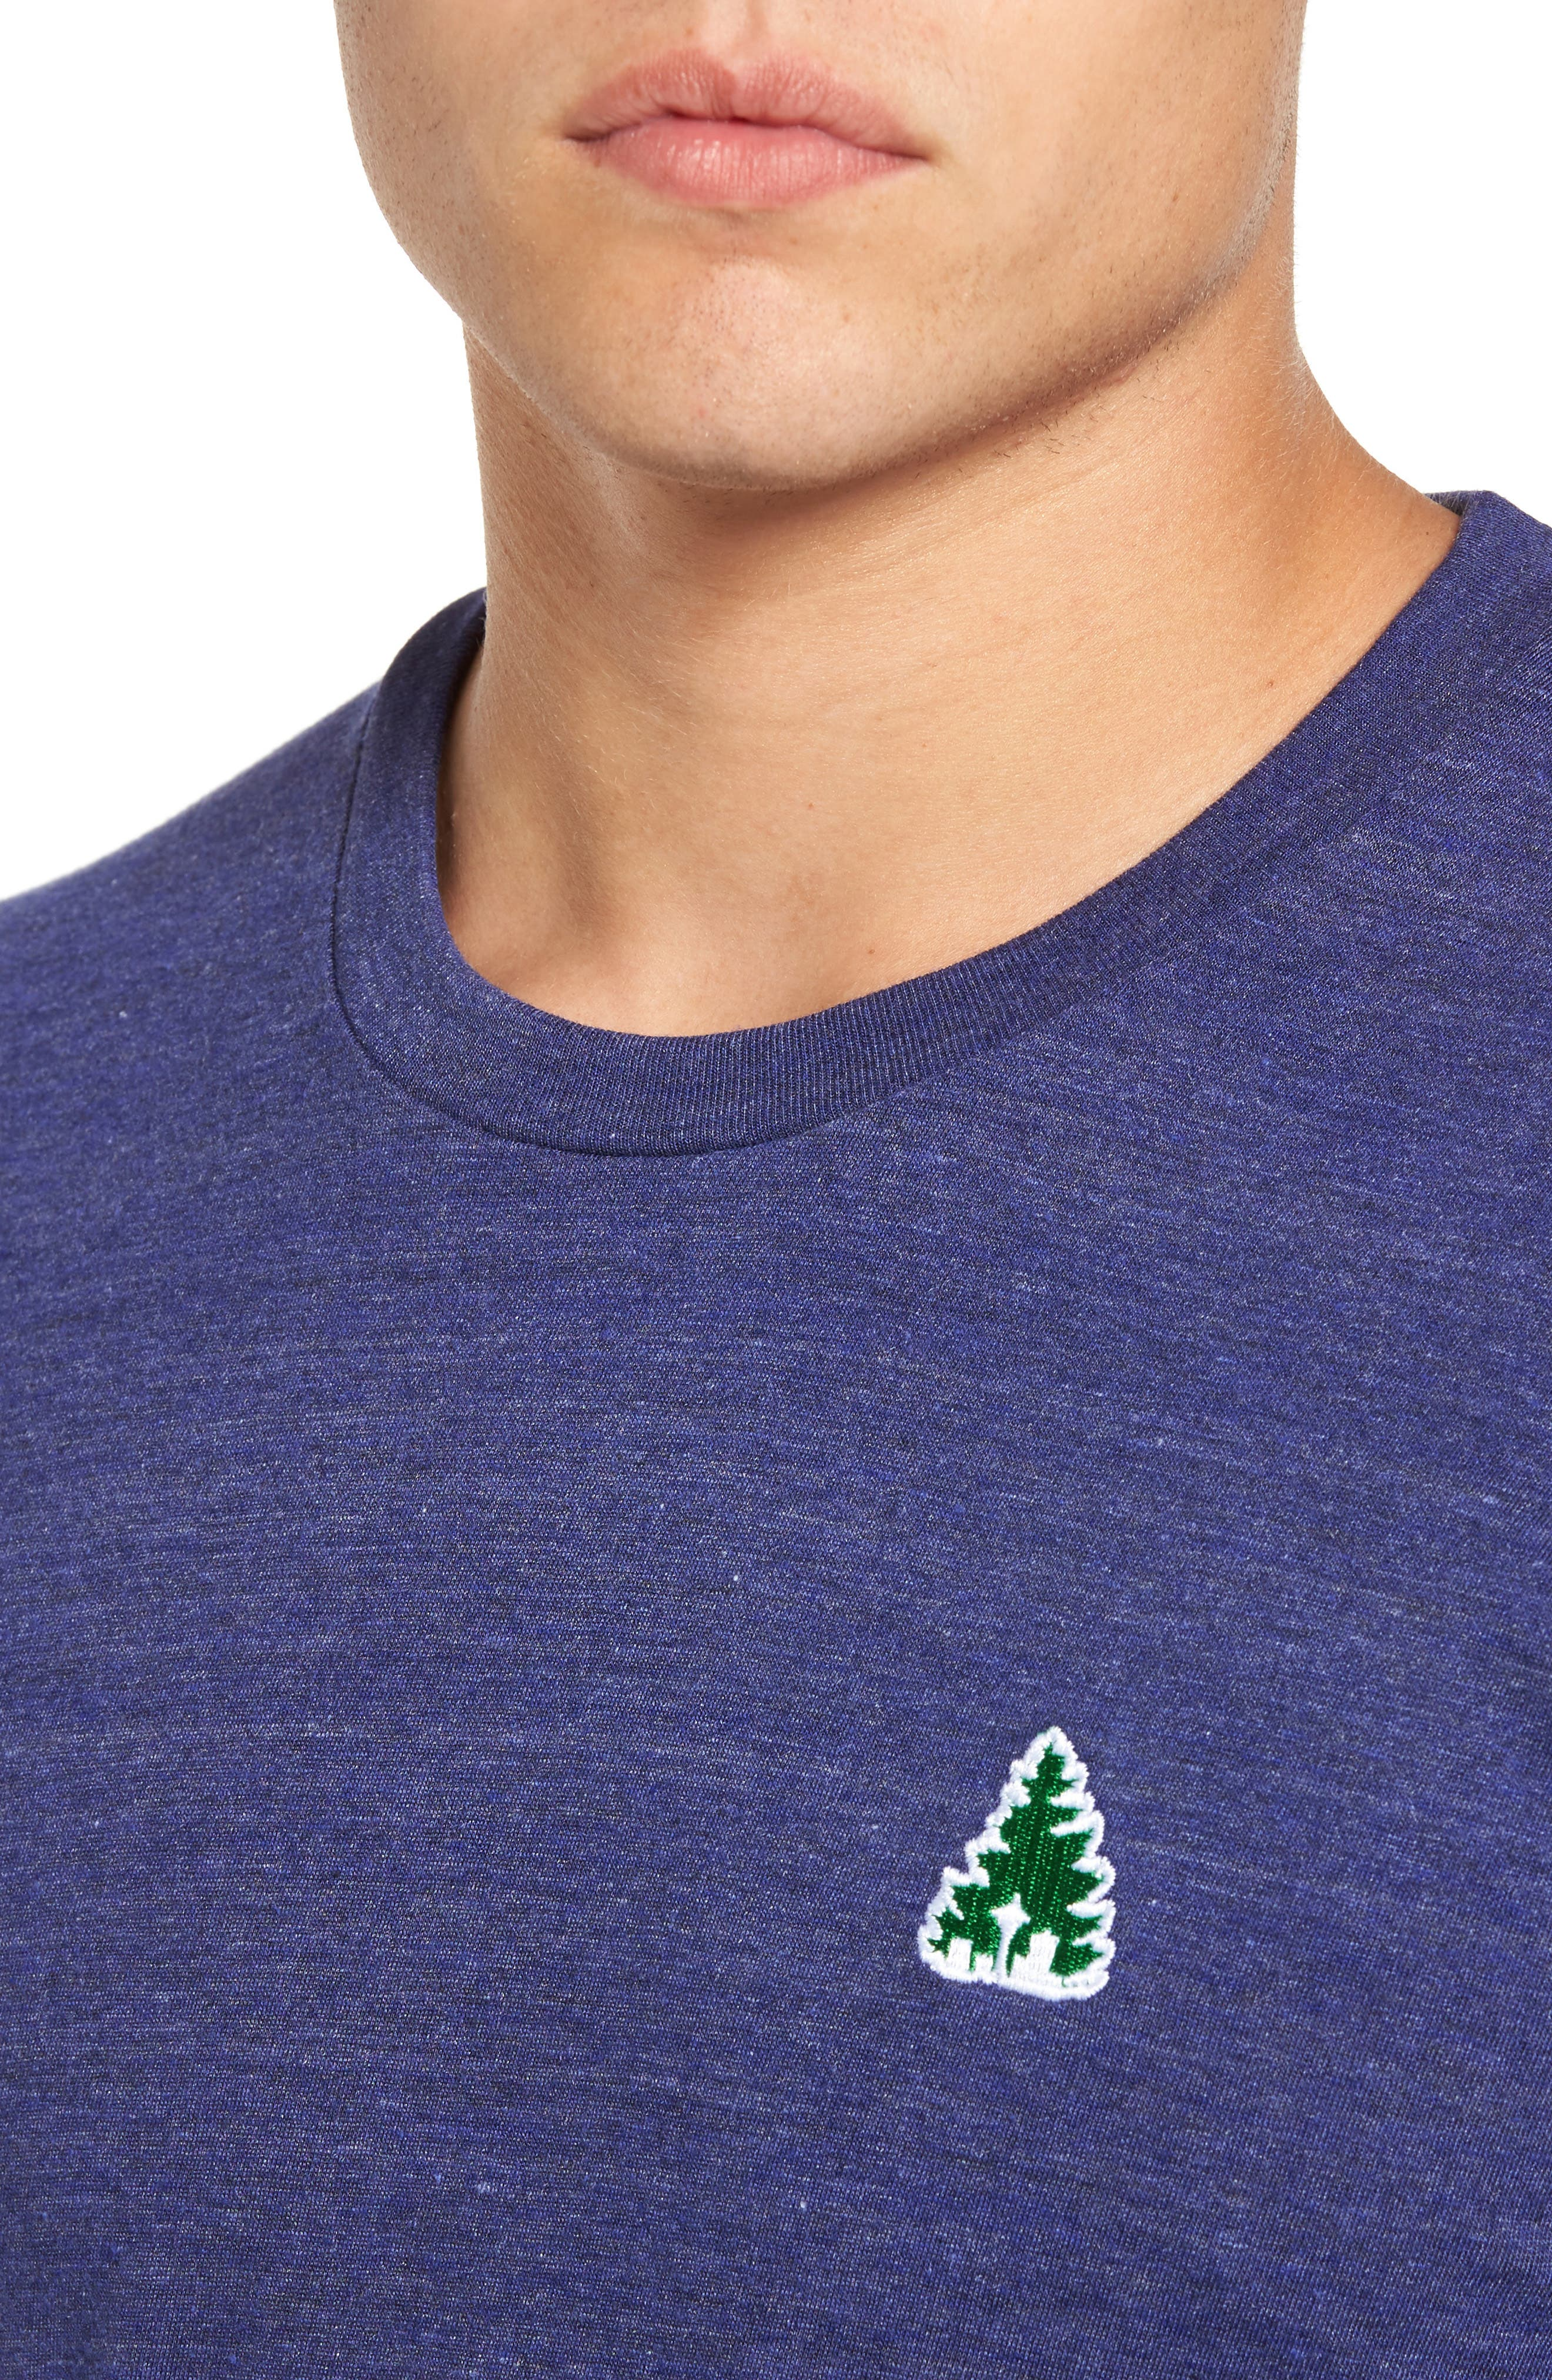 Johnny Tree Embroidered T-Shirt,                             Alternate thumbnail 4, color,                             Blue